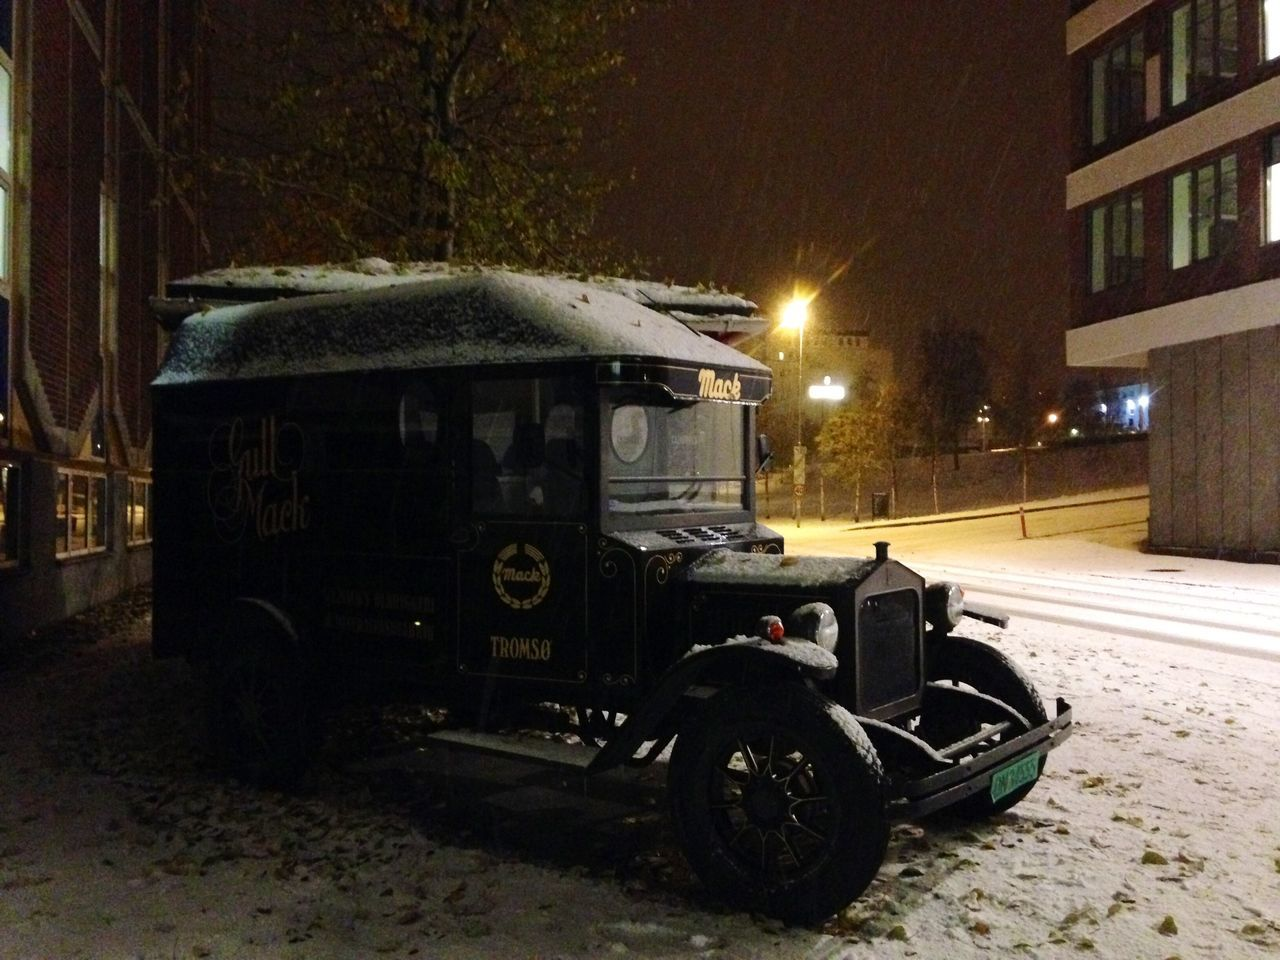 Transportation Land Vehicle Architecture Illuminated Mode Of Transport Built Structure Night Building Exterior Car No People Outdoors Stationary Mack Beer Nordkapp Norway